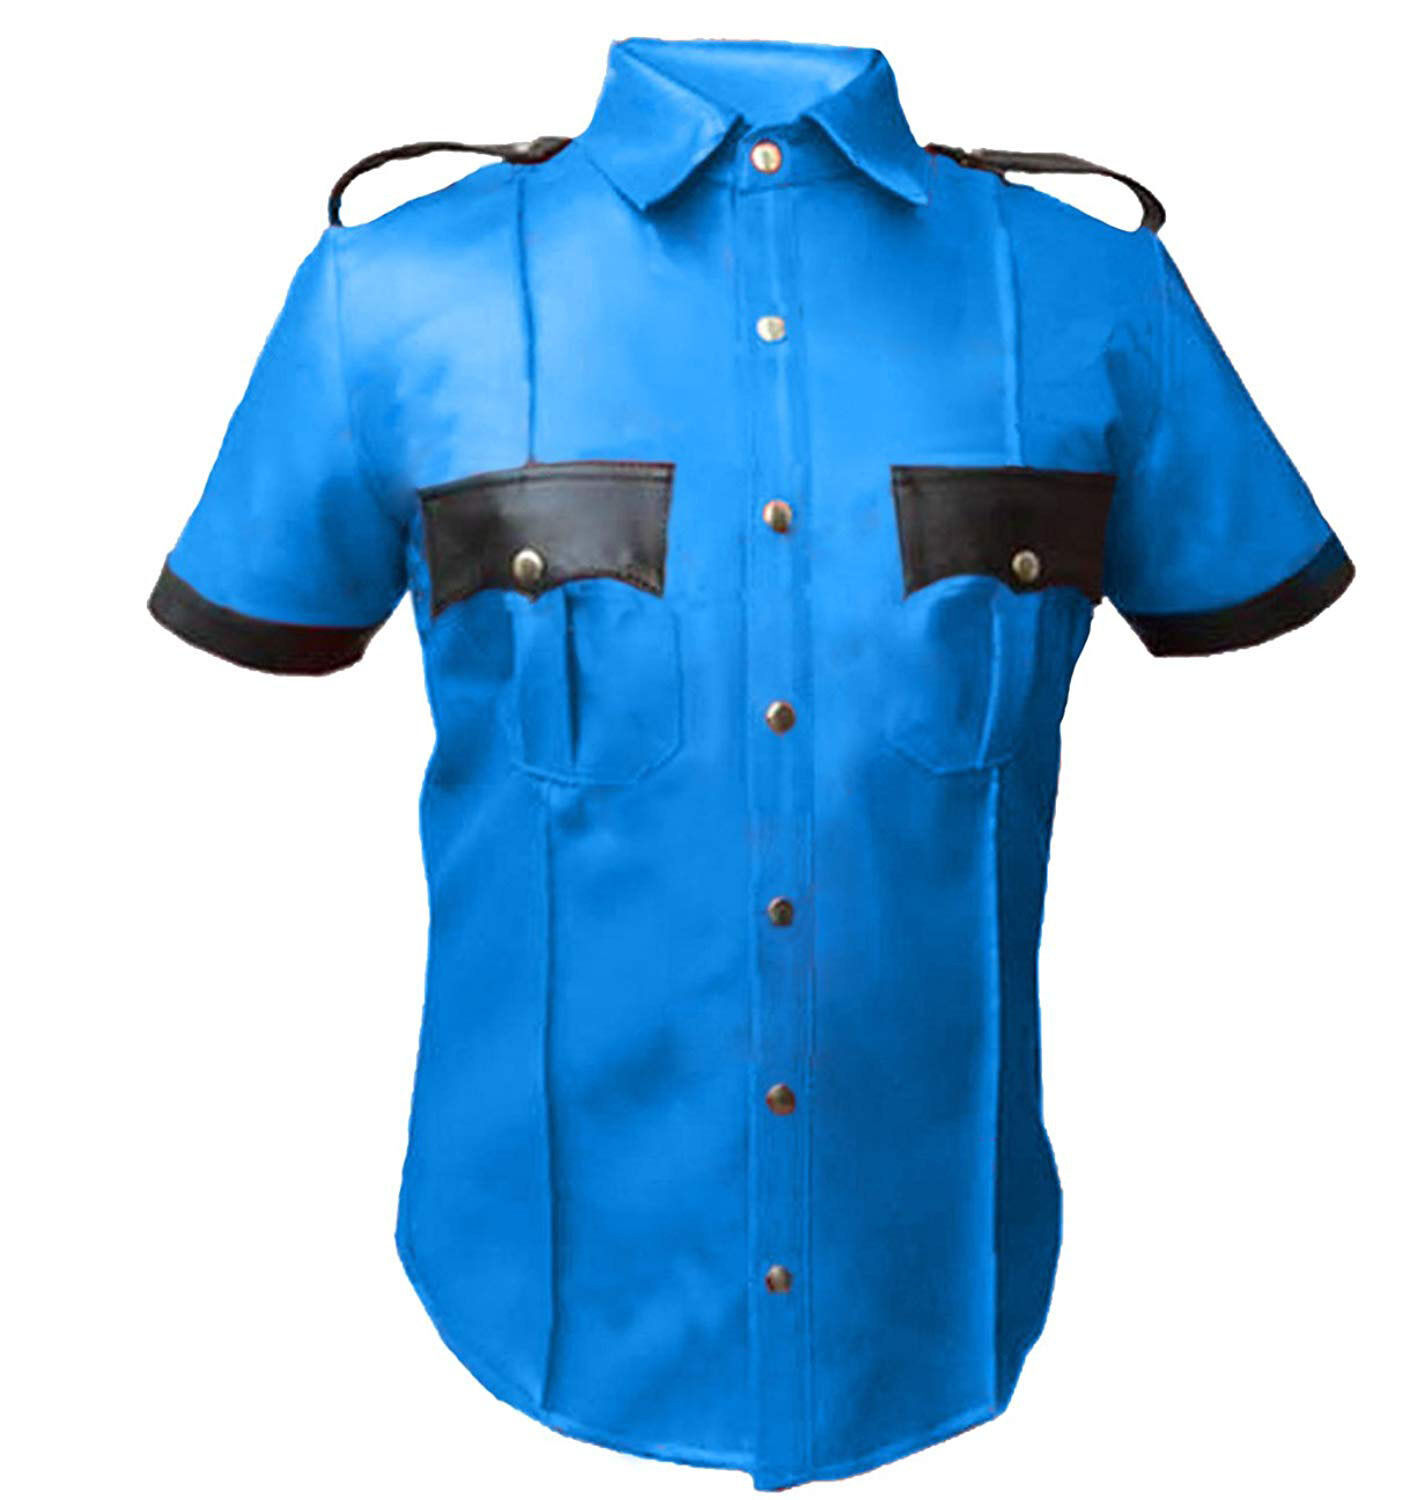 Sheep or Cow Leather Police Uniform Mens Very HOT Genuine Real Shirt blueF Gay